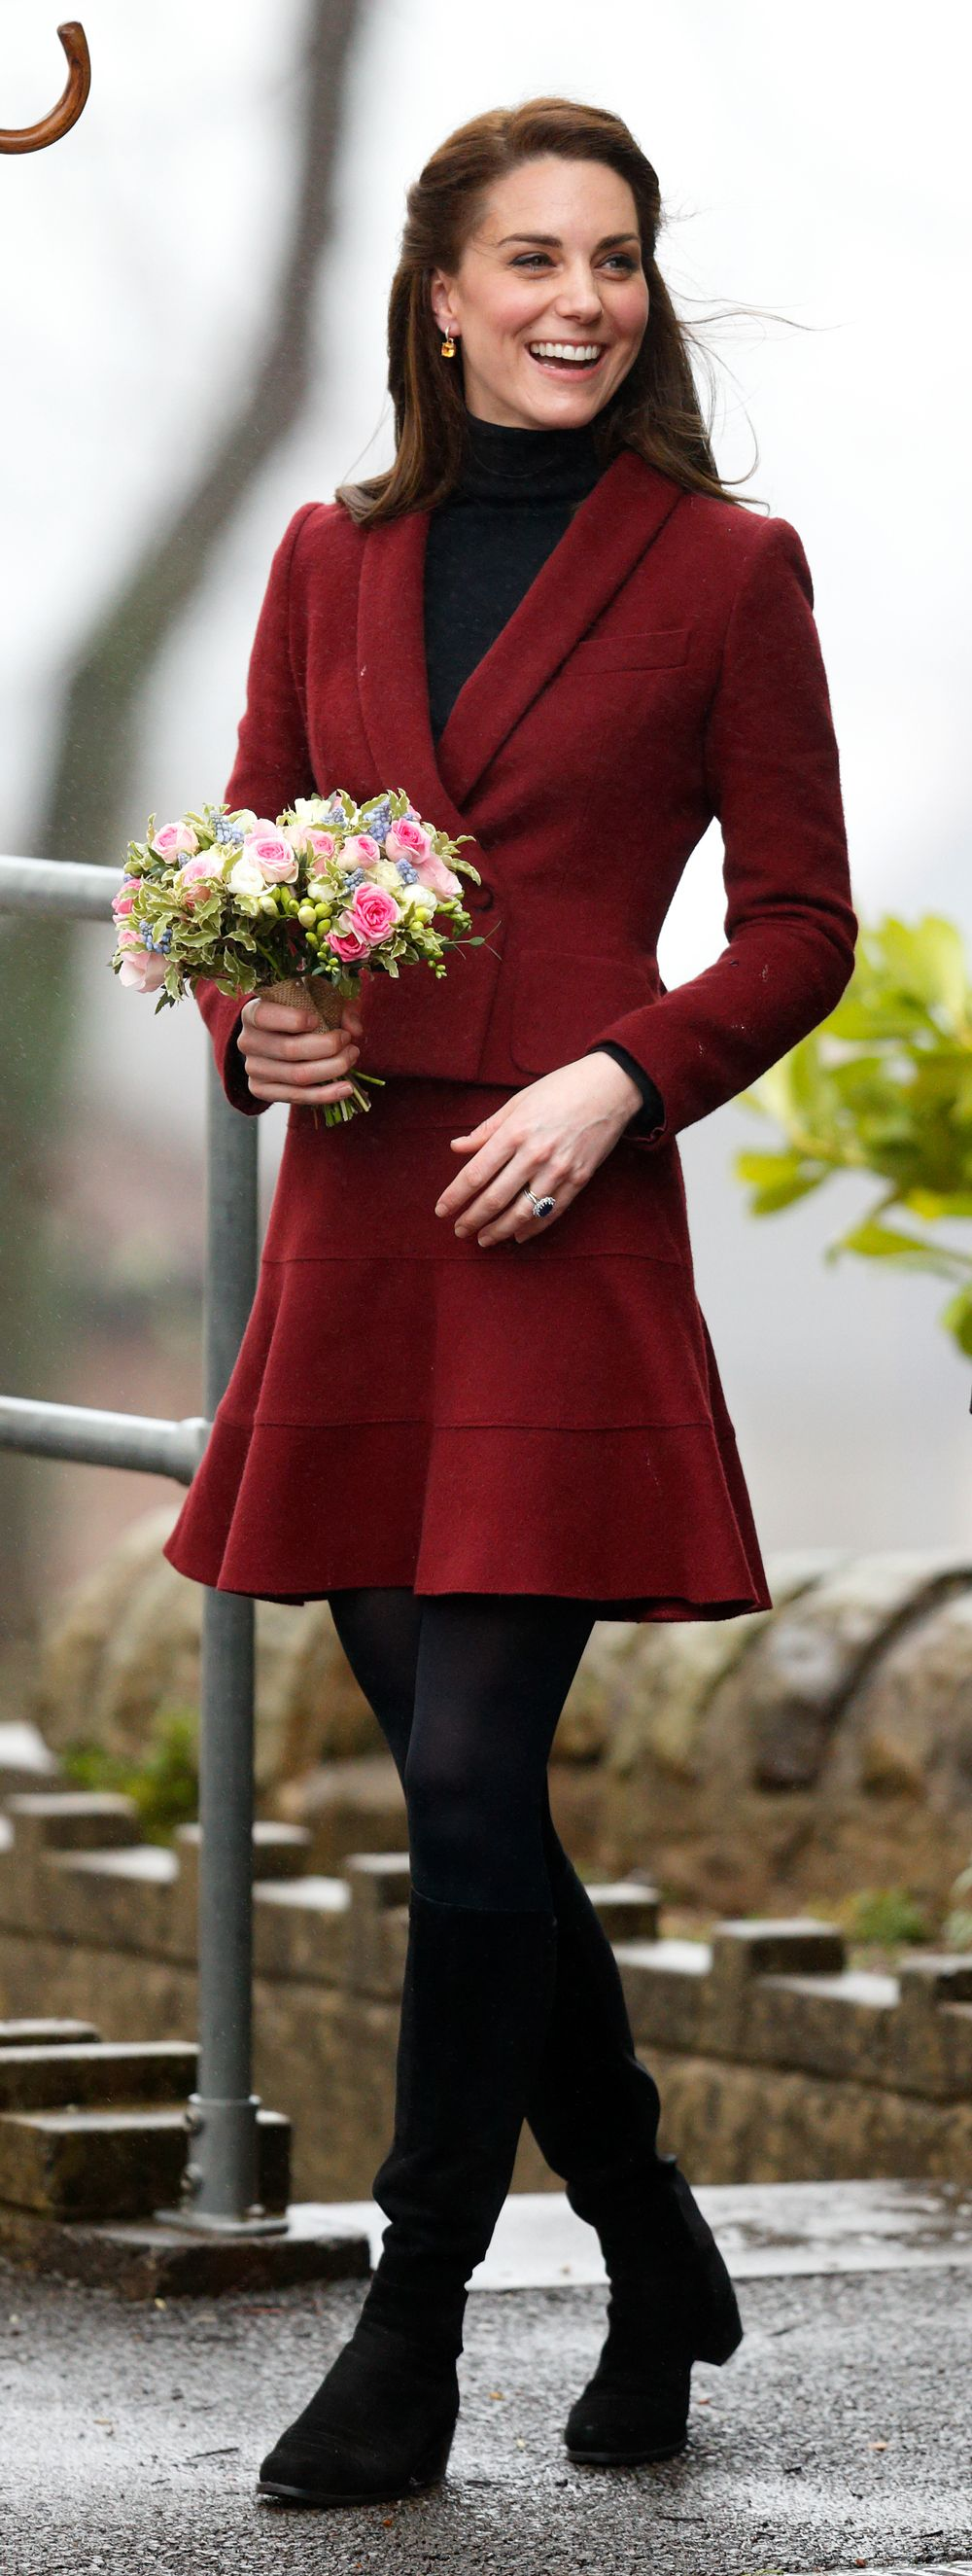 d901ae40391 Kate Middleton style  The Duchess  best ever dresses and outfits